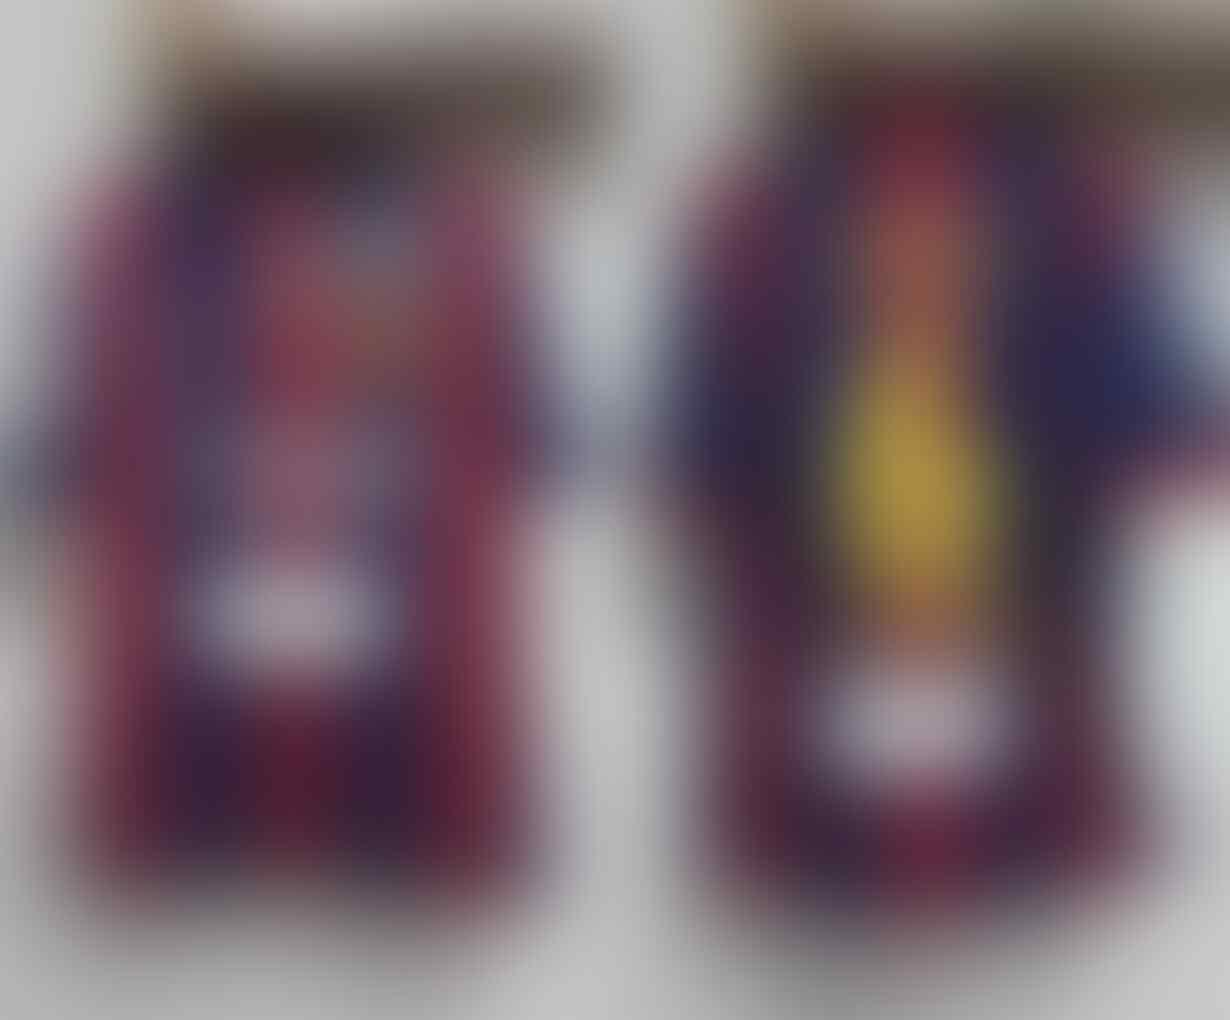 Jersey Paketan Barca Barcelona Home 14/15 dan Final London fullpatch murah banget